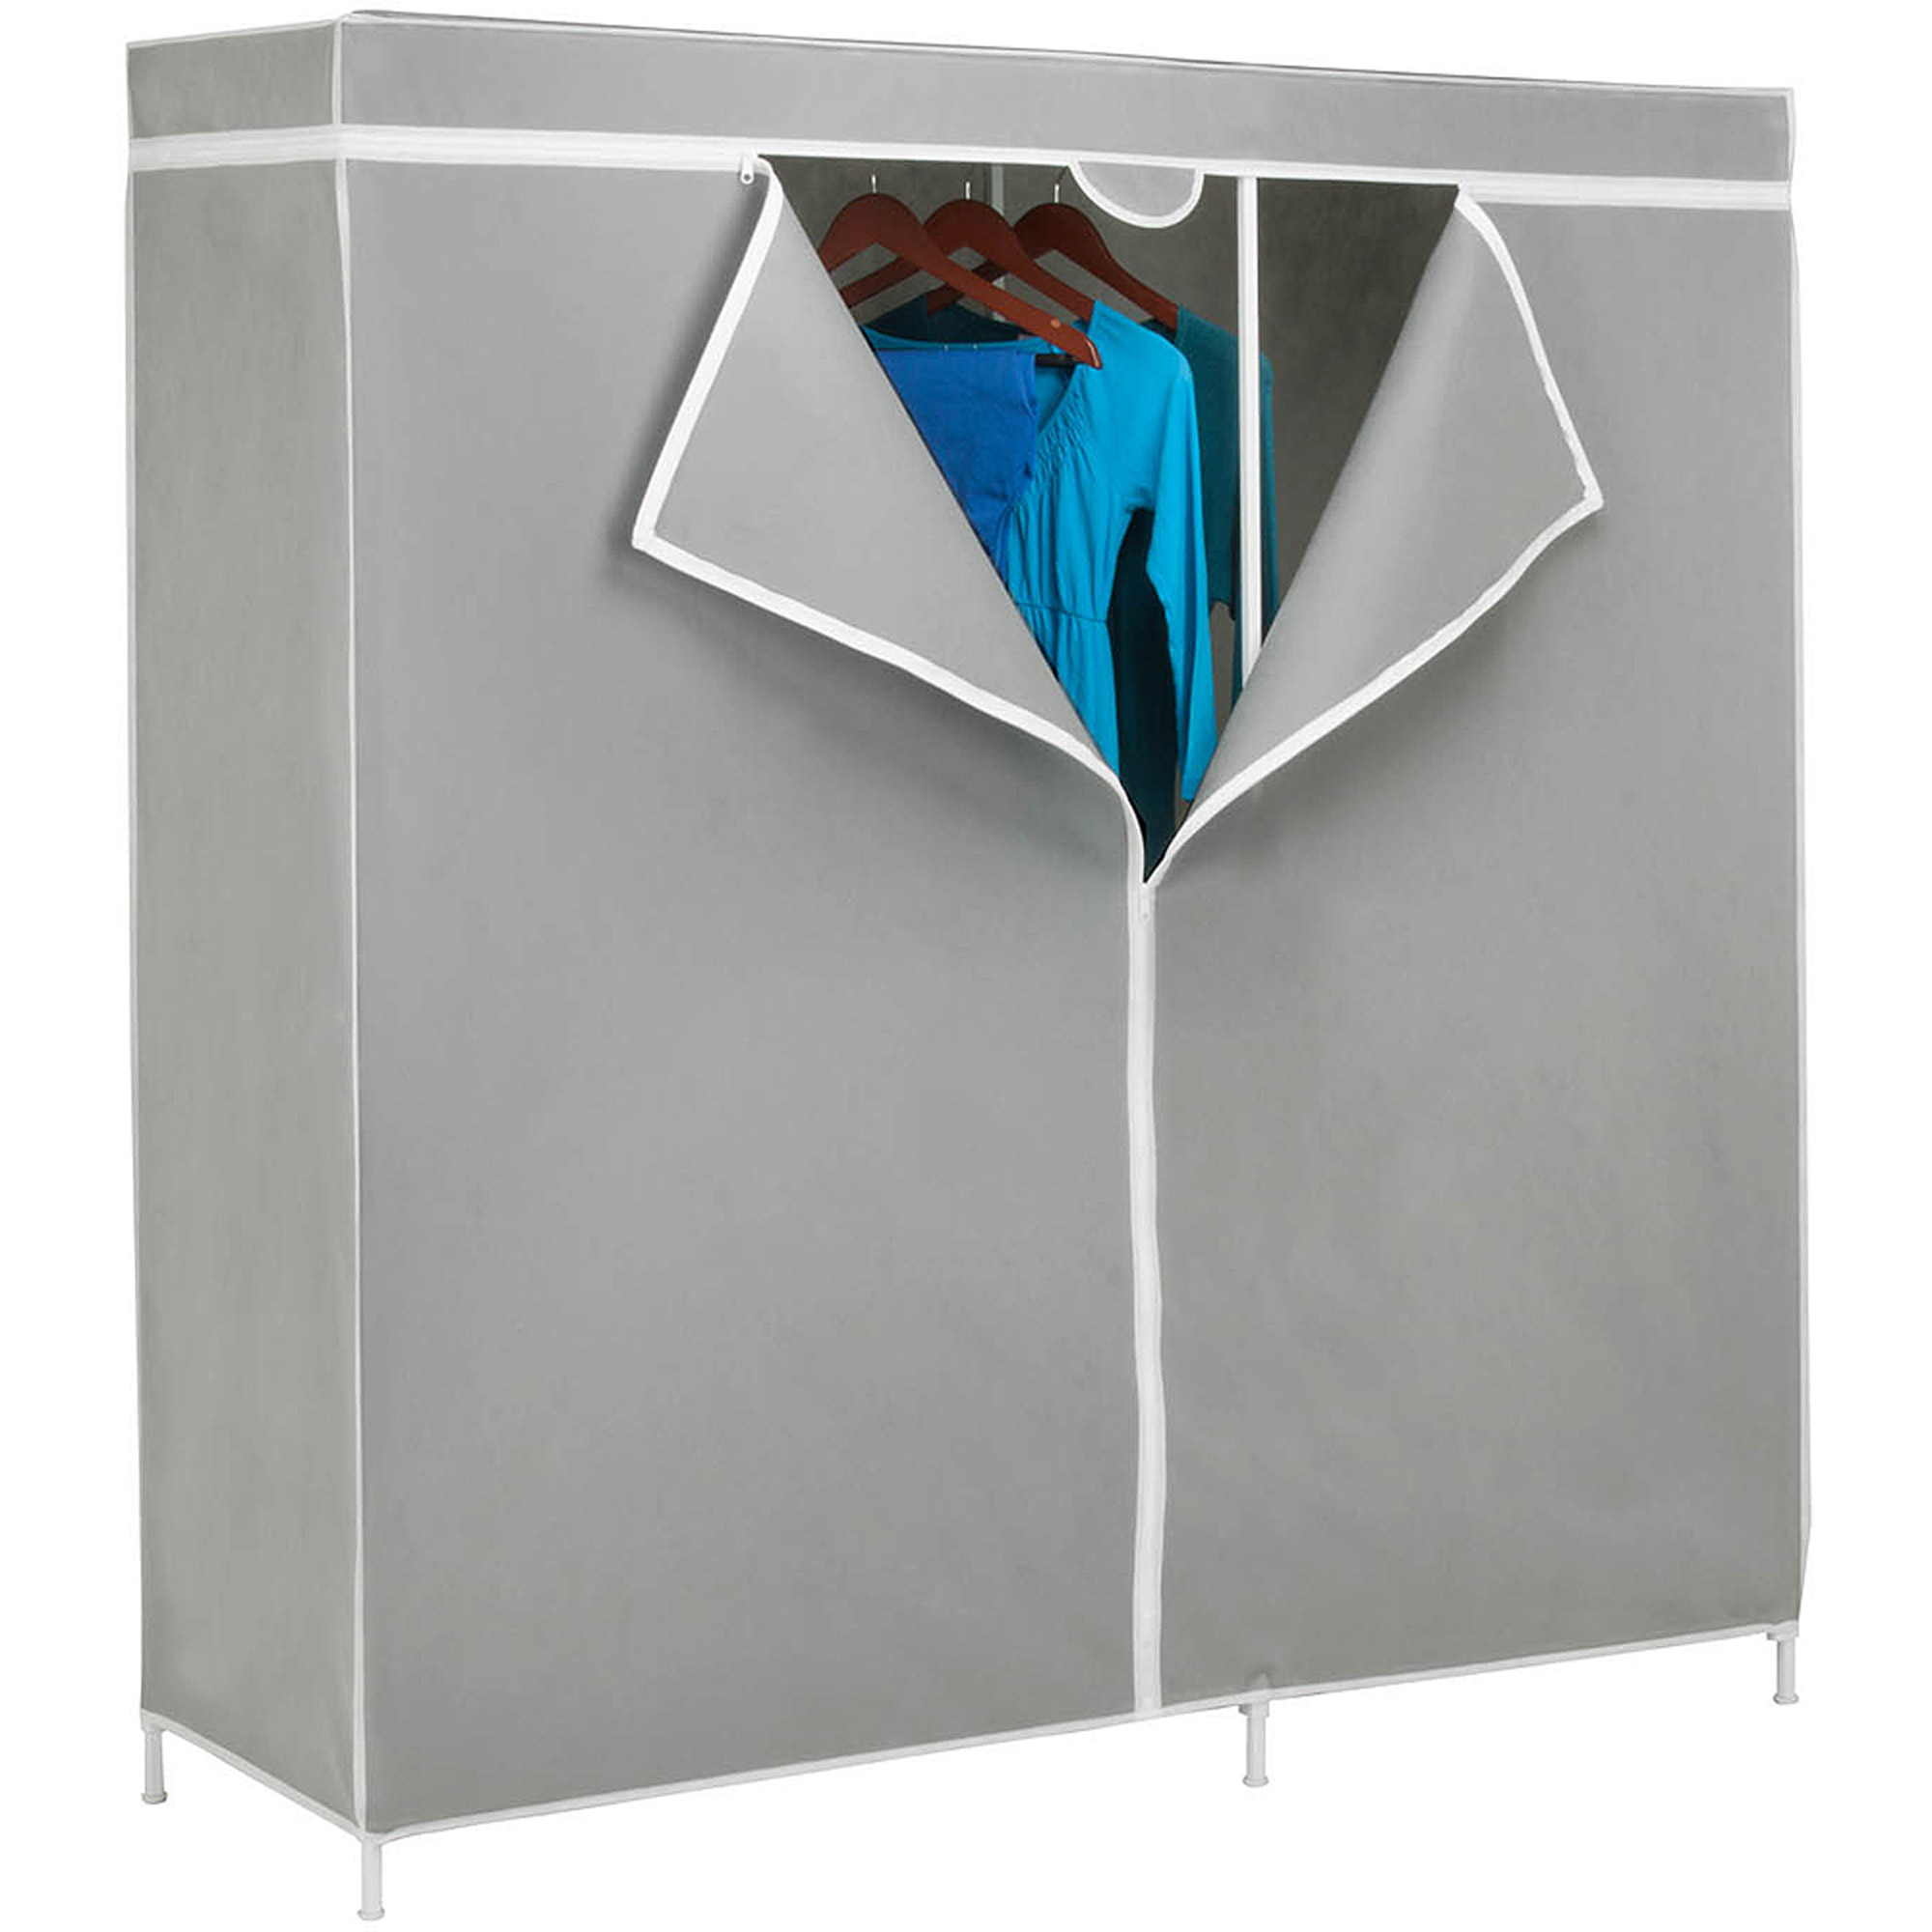 "Honey Can Do 60"" Steel Frame Wardrobe Closet System"